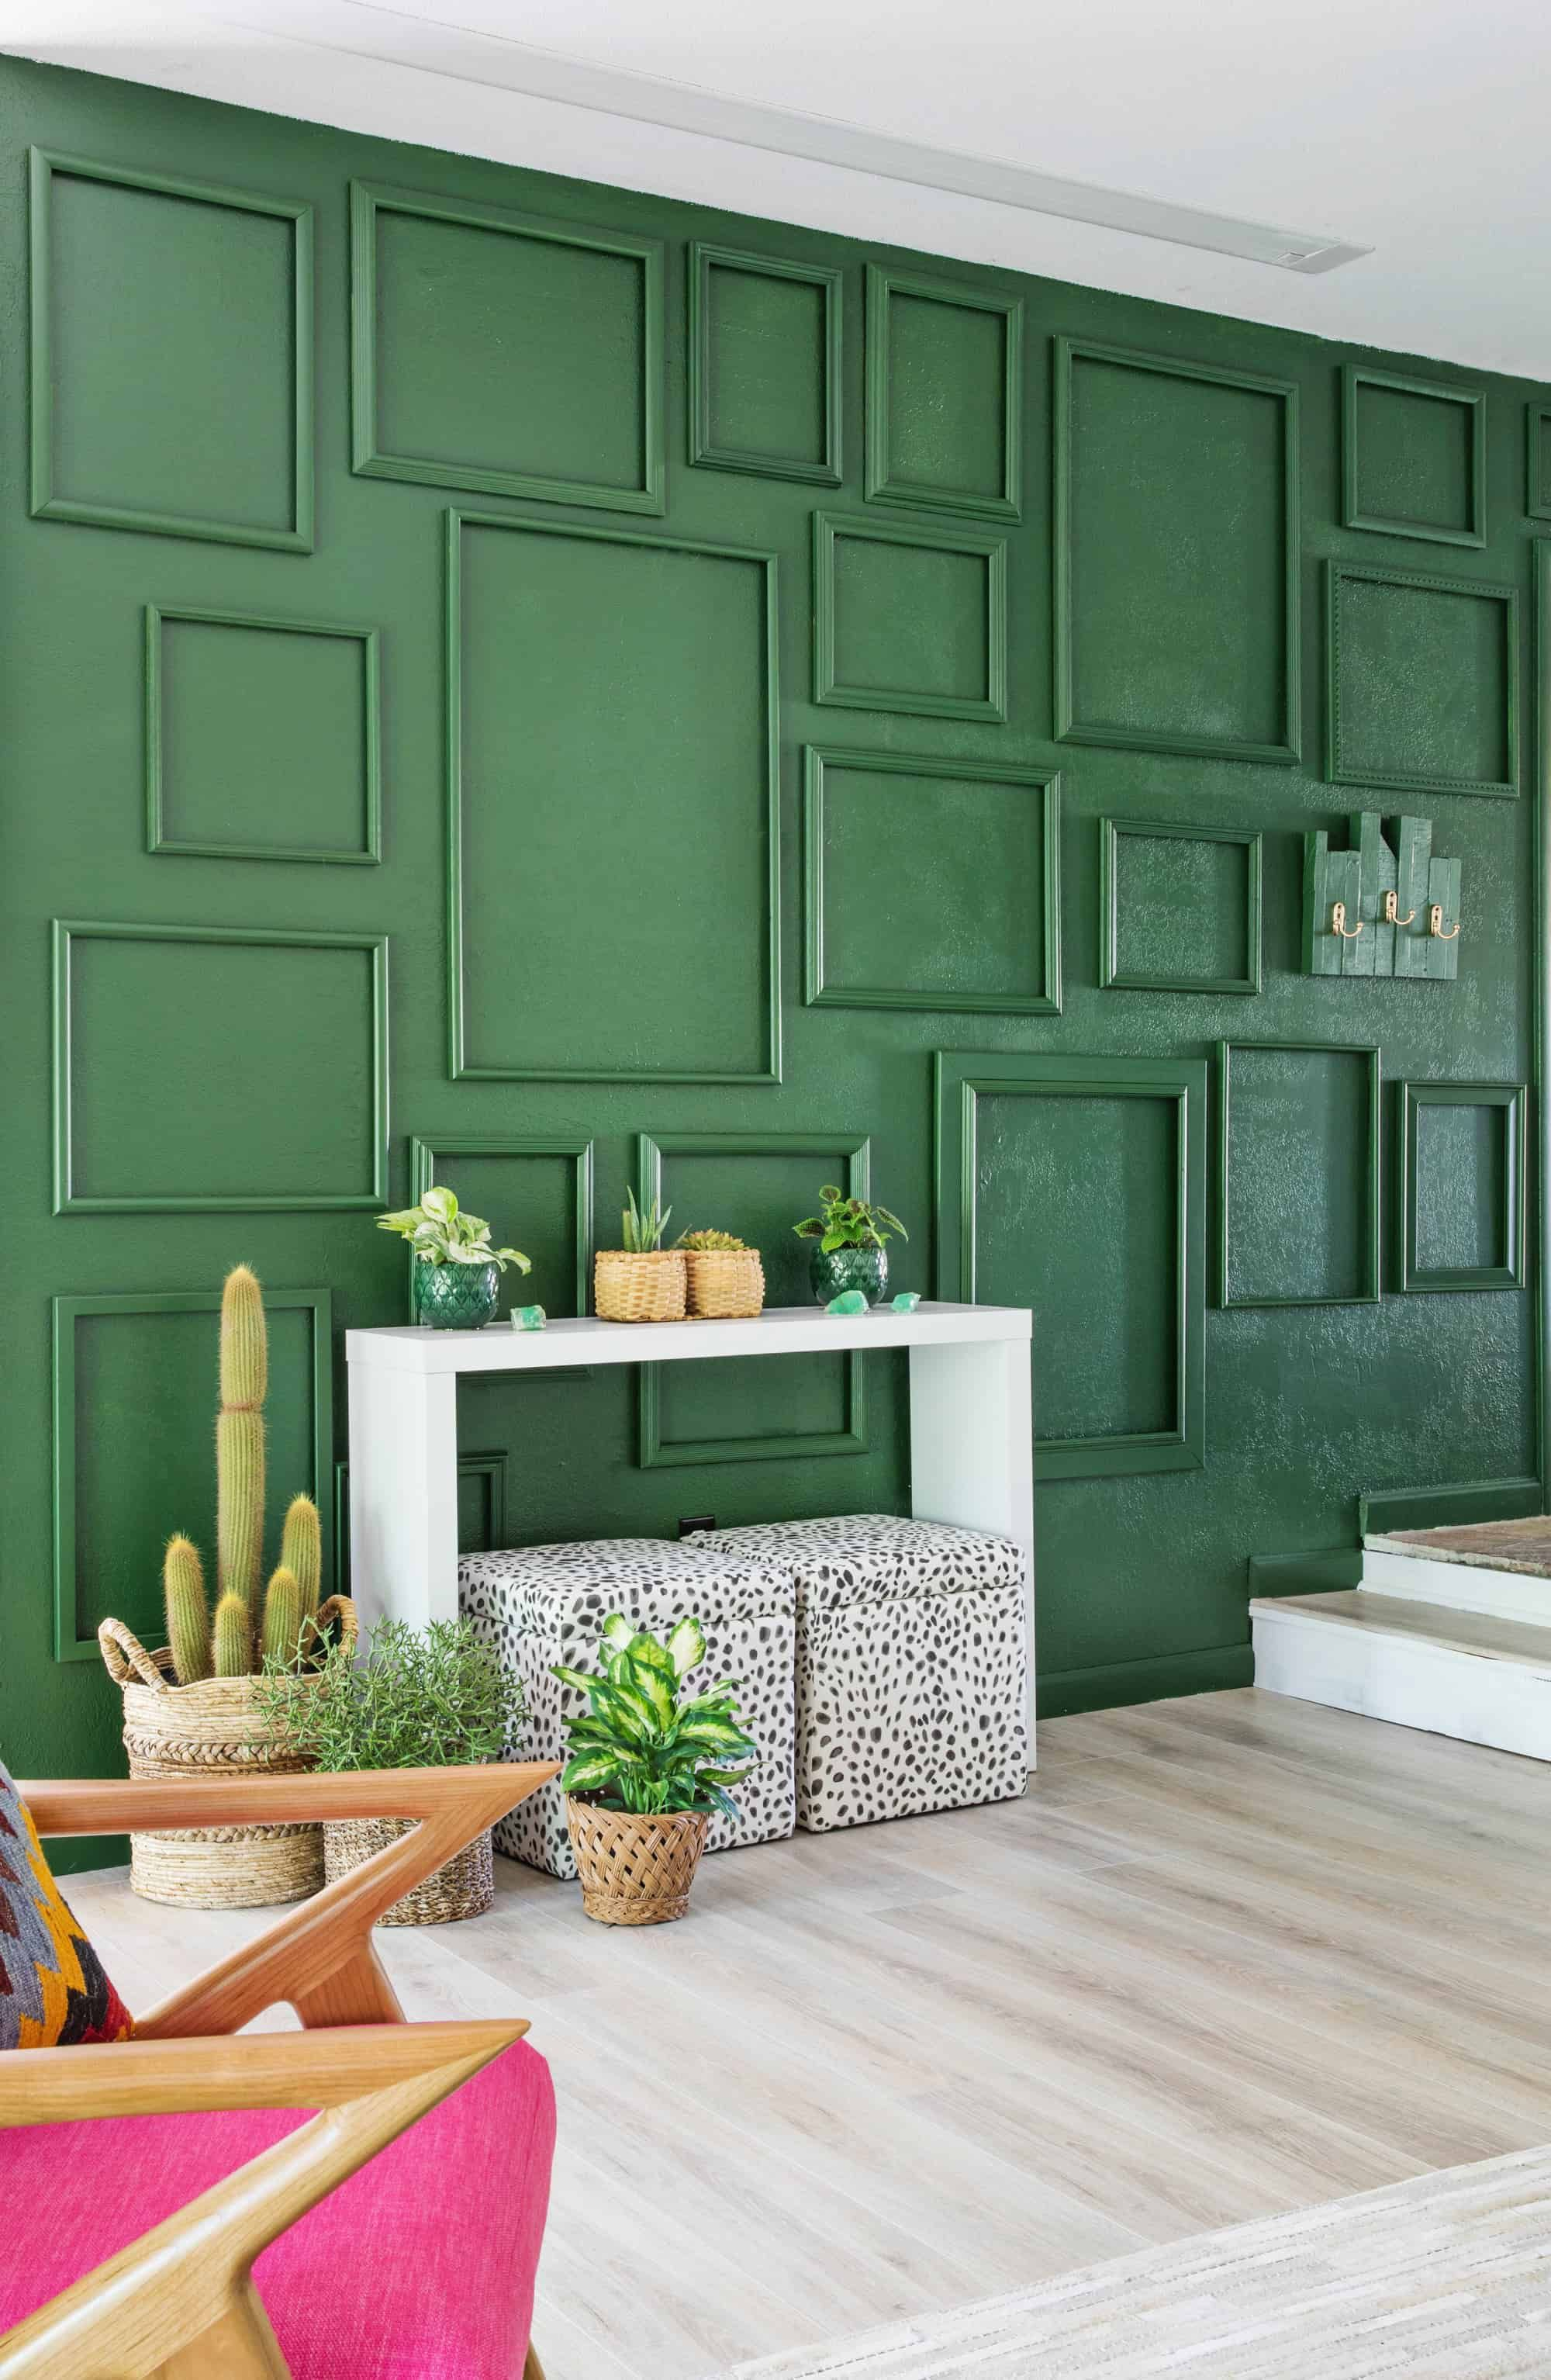 20 easy accent wall ideas accent walls in living room on living room colors for walls id=87331